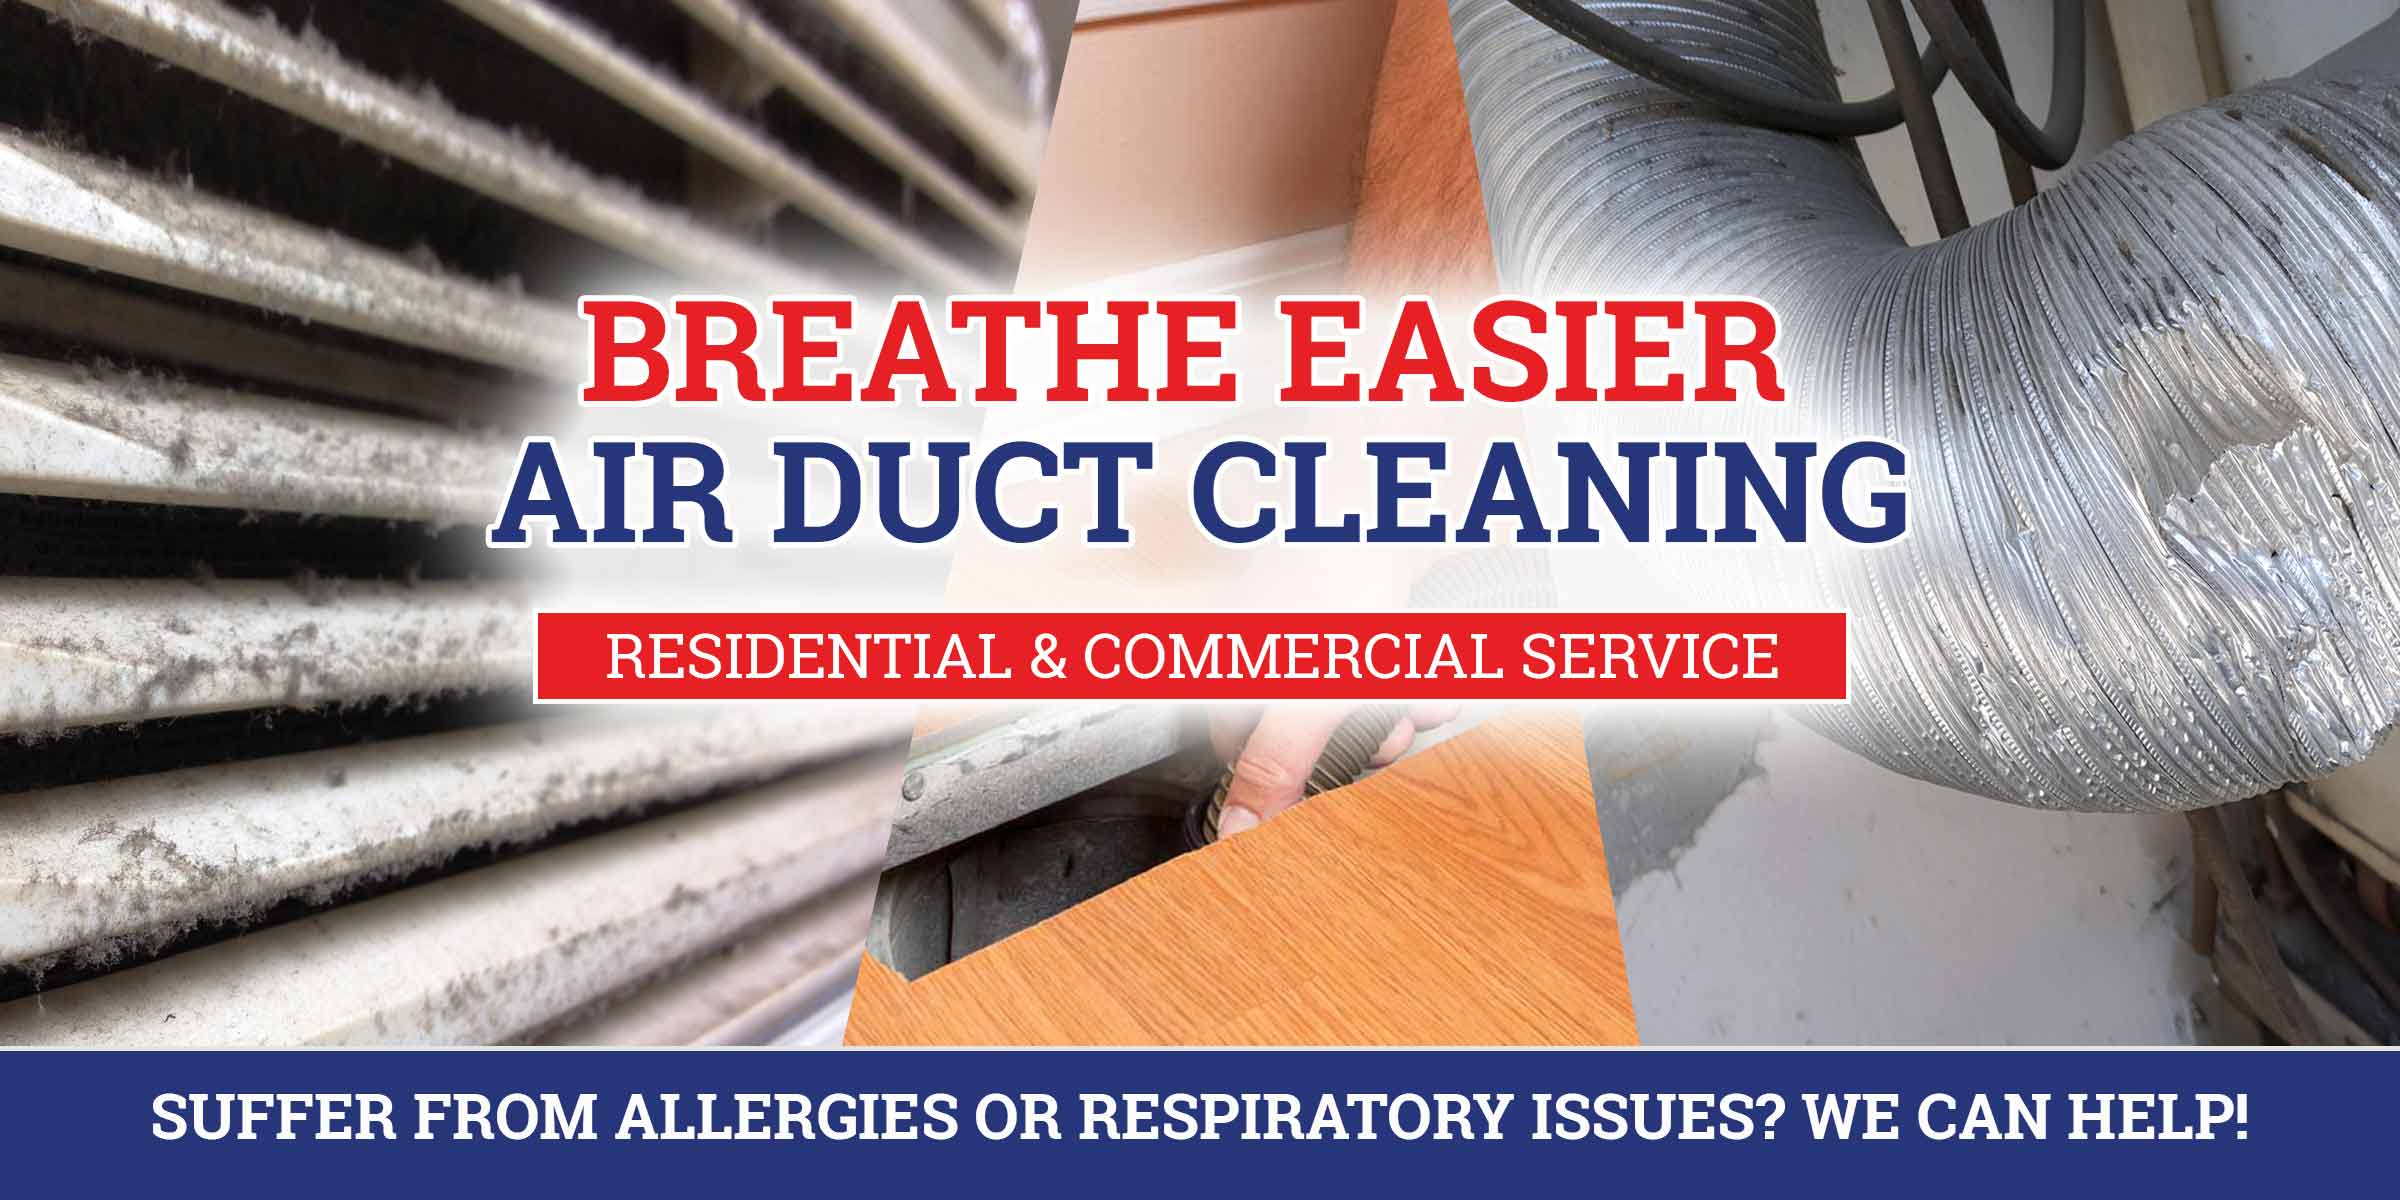 air duct cleaning for your home or business